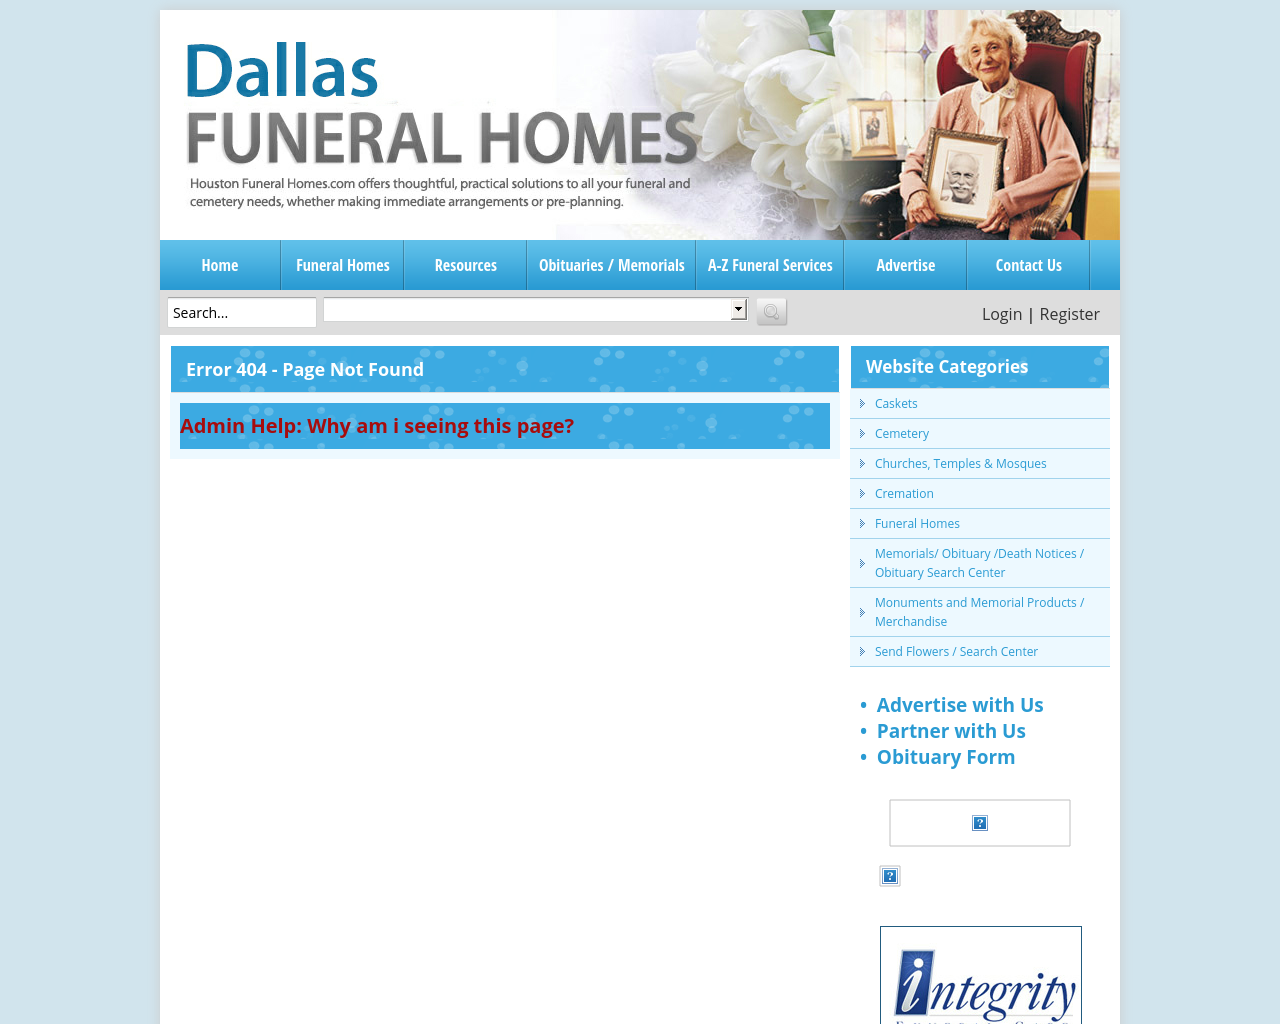 Dallas-Funeral-Homes-Advertising-Reviews-Pricing